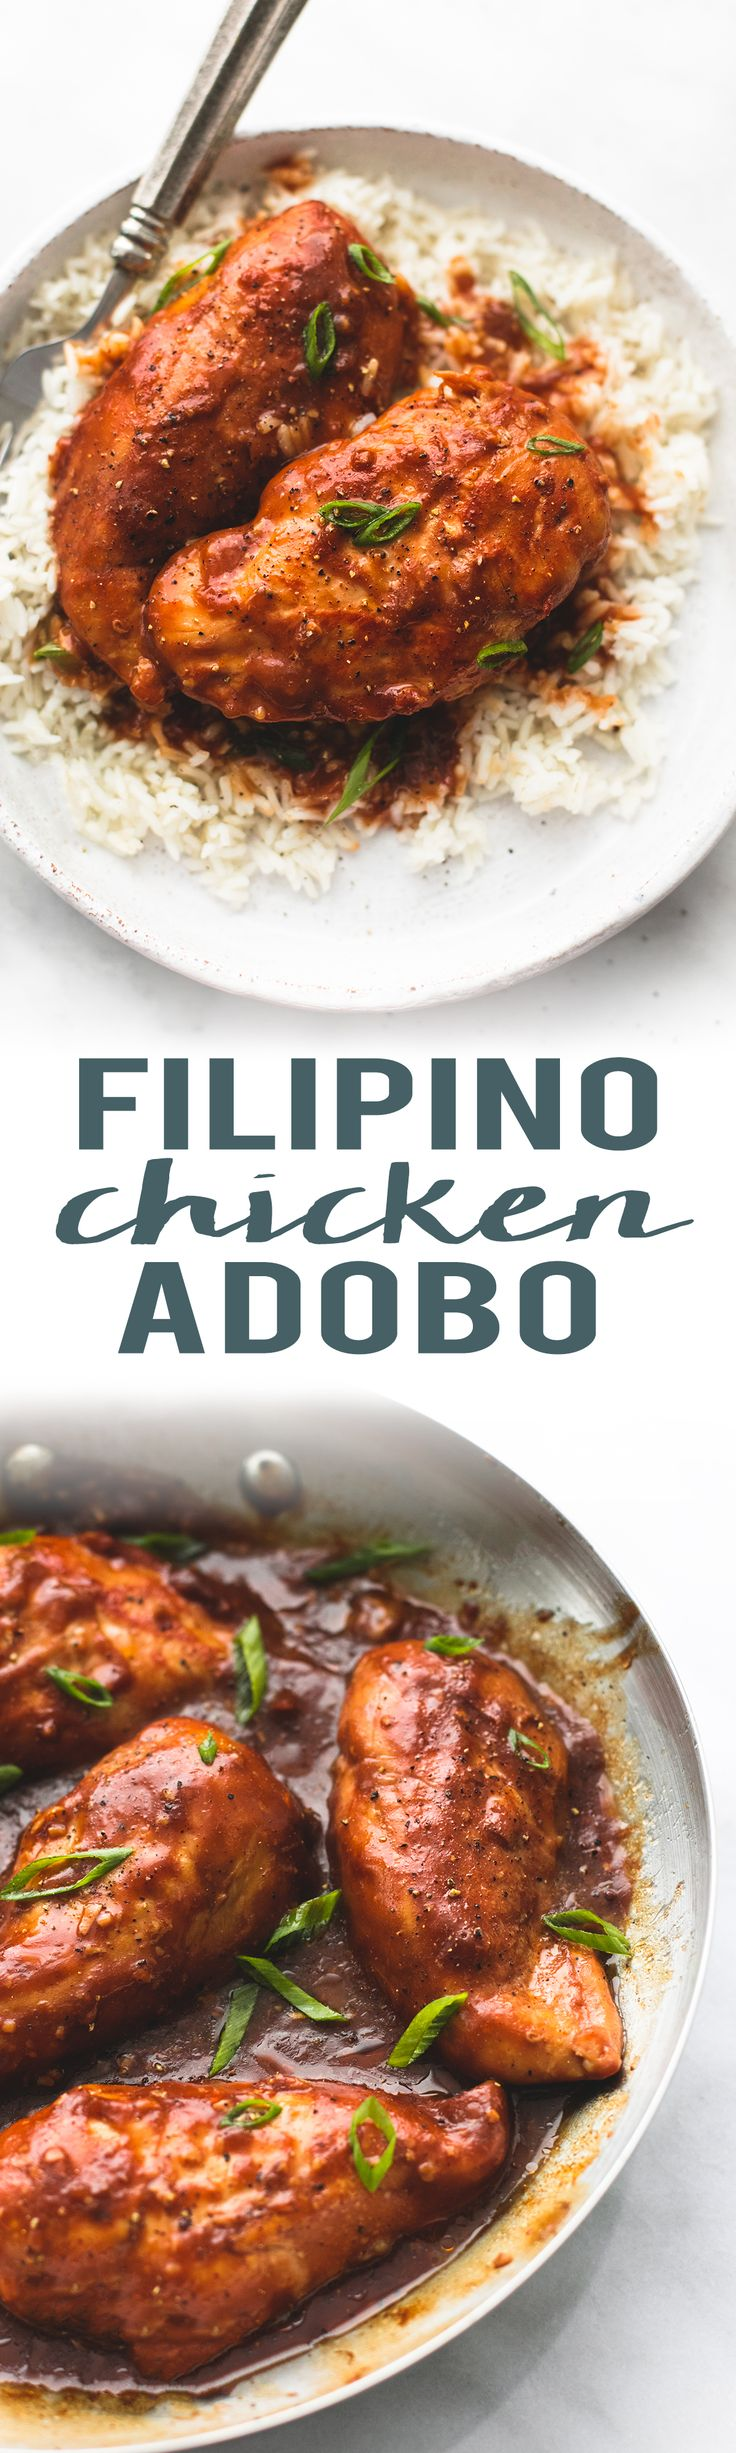 Easy homemade Filipino Chicken Adobo | lecremedelacrumb.com